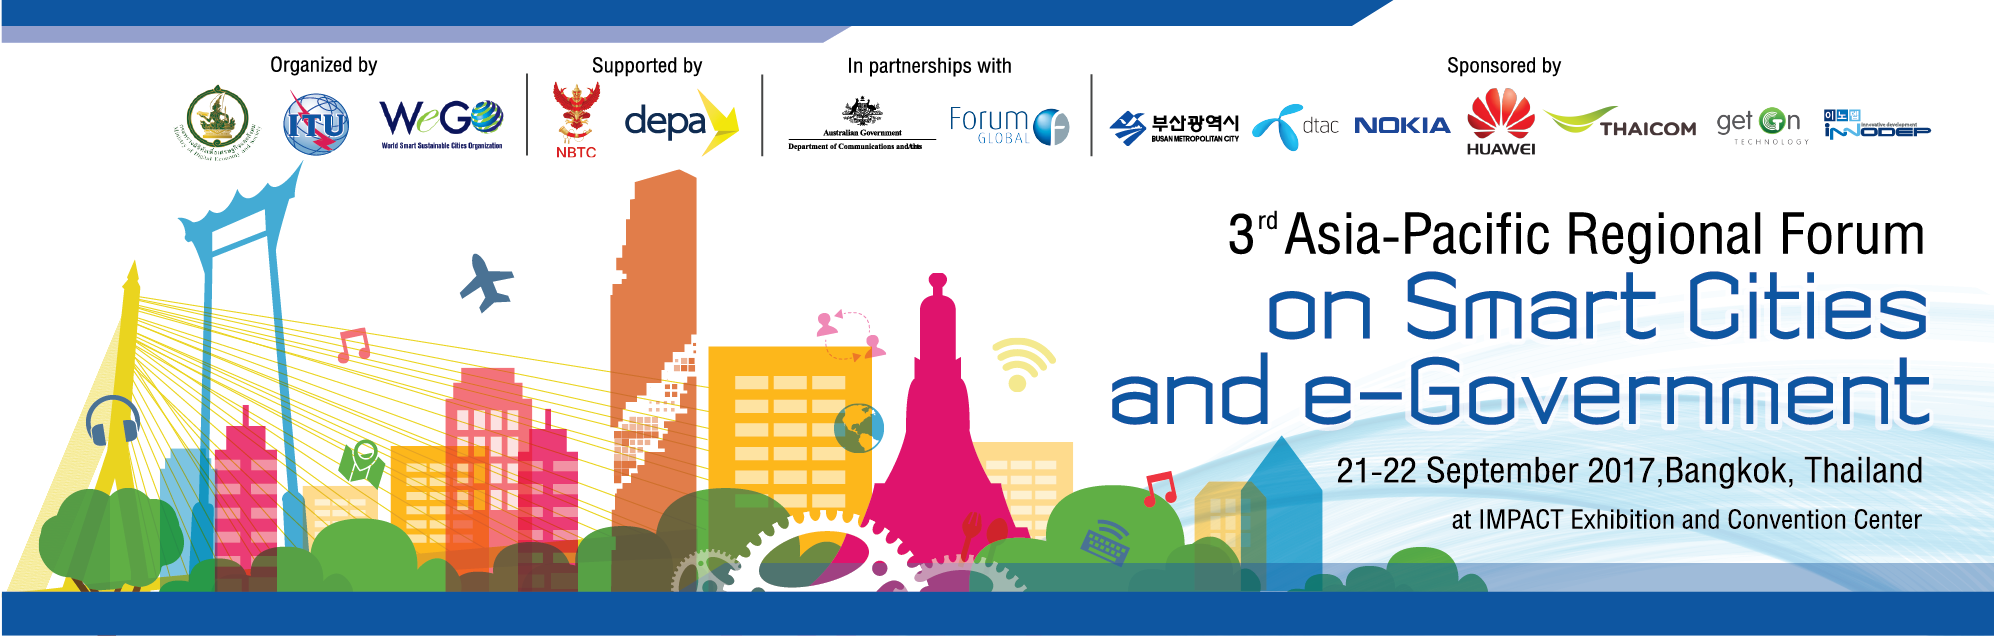 The 3rd Asia-Pacific Regional Forums on Smart Cities and e